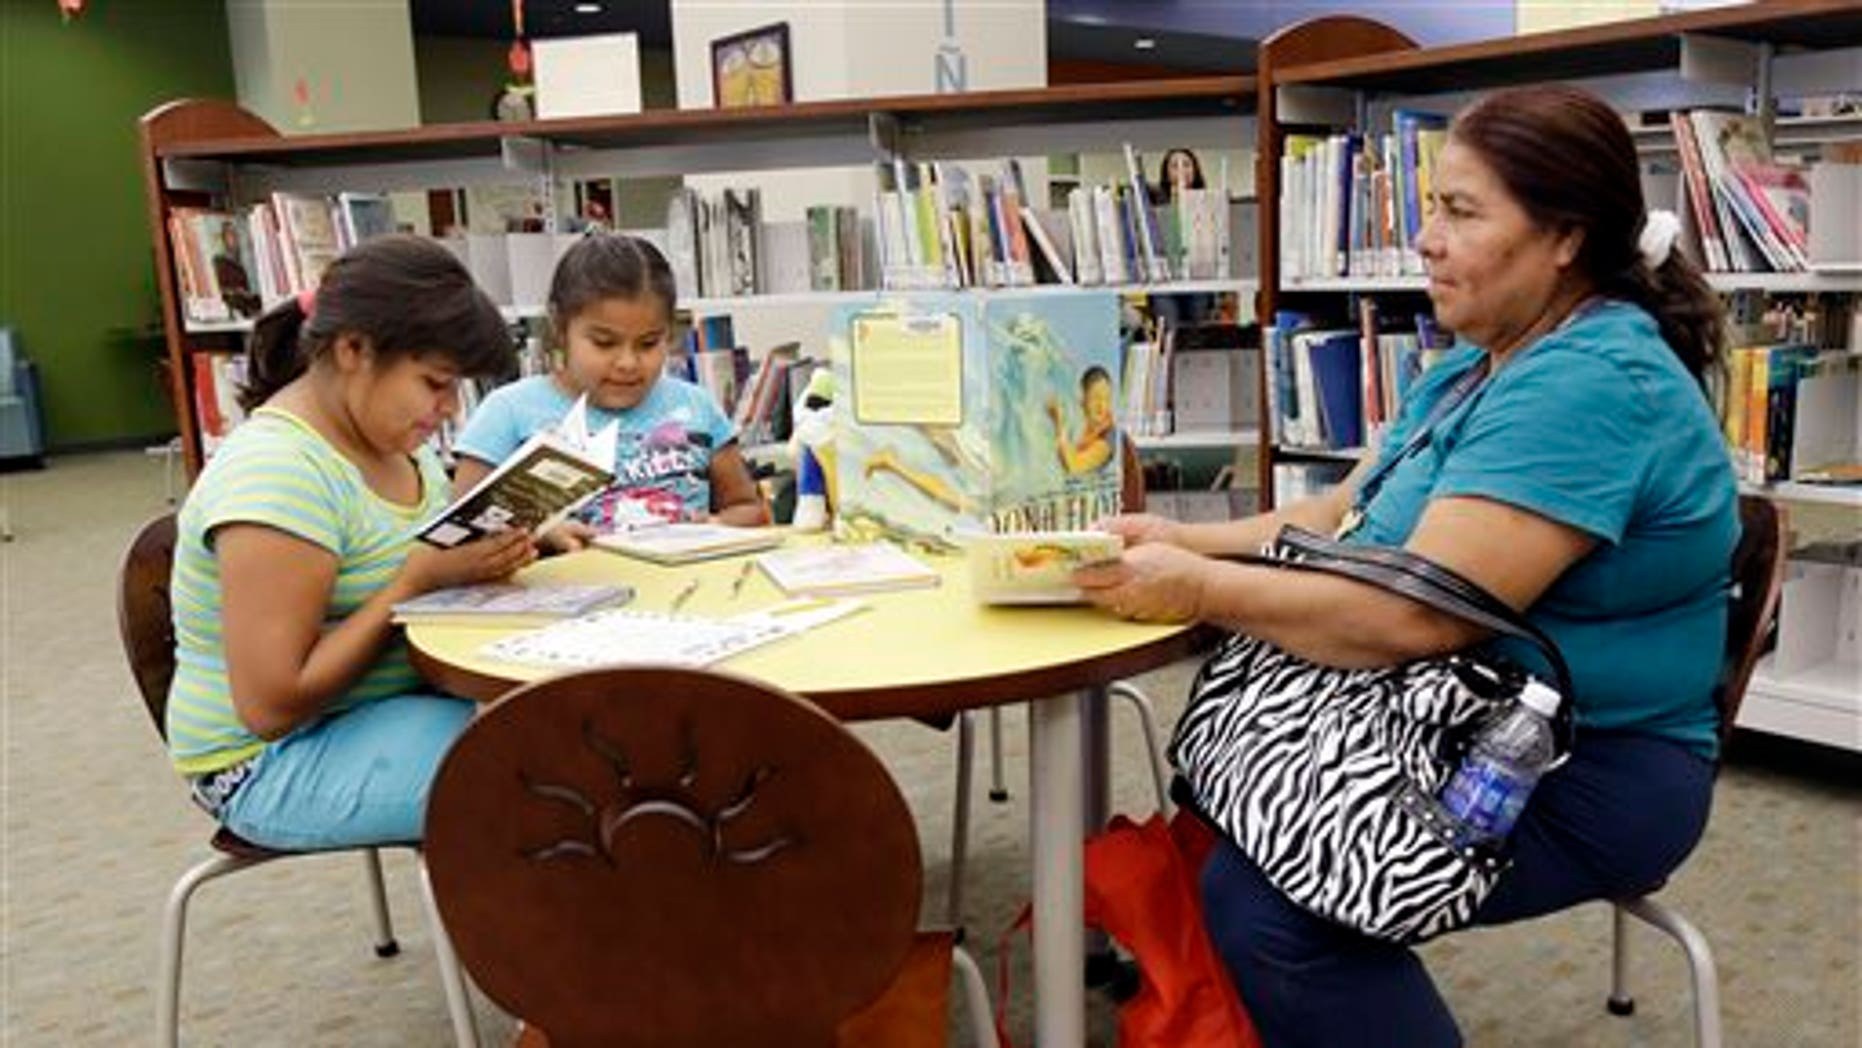 In this Friday, July 19, 2013 photo, Maria Lopez, right, reads in the city library alongside daughters Emily, 9, at left, and Esmeralda, 7, in Watsonville, Calif. In the bricked plaza, strolling musicians wearing glitzy cowboy outfits blast a mariachi song, while Spanish-speaking shoppers bustle between farm stands choosing tasty cactus leaves and fresh chiles. Welcome to an increasingly typical town in California, a state where Hispanics become the largest ethnic group this summer. As the Golden State becomes less and less white, communities are becoming more segregated, not less. (AP Photo/Marcio Jose Sanchez)